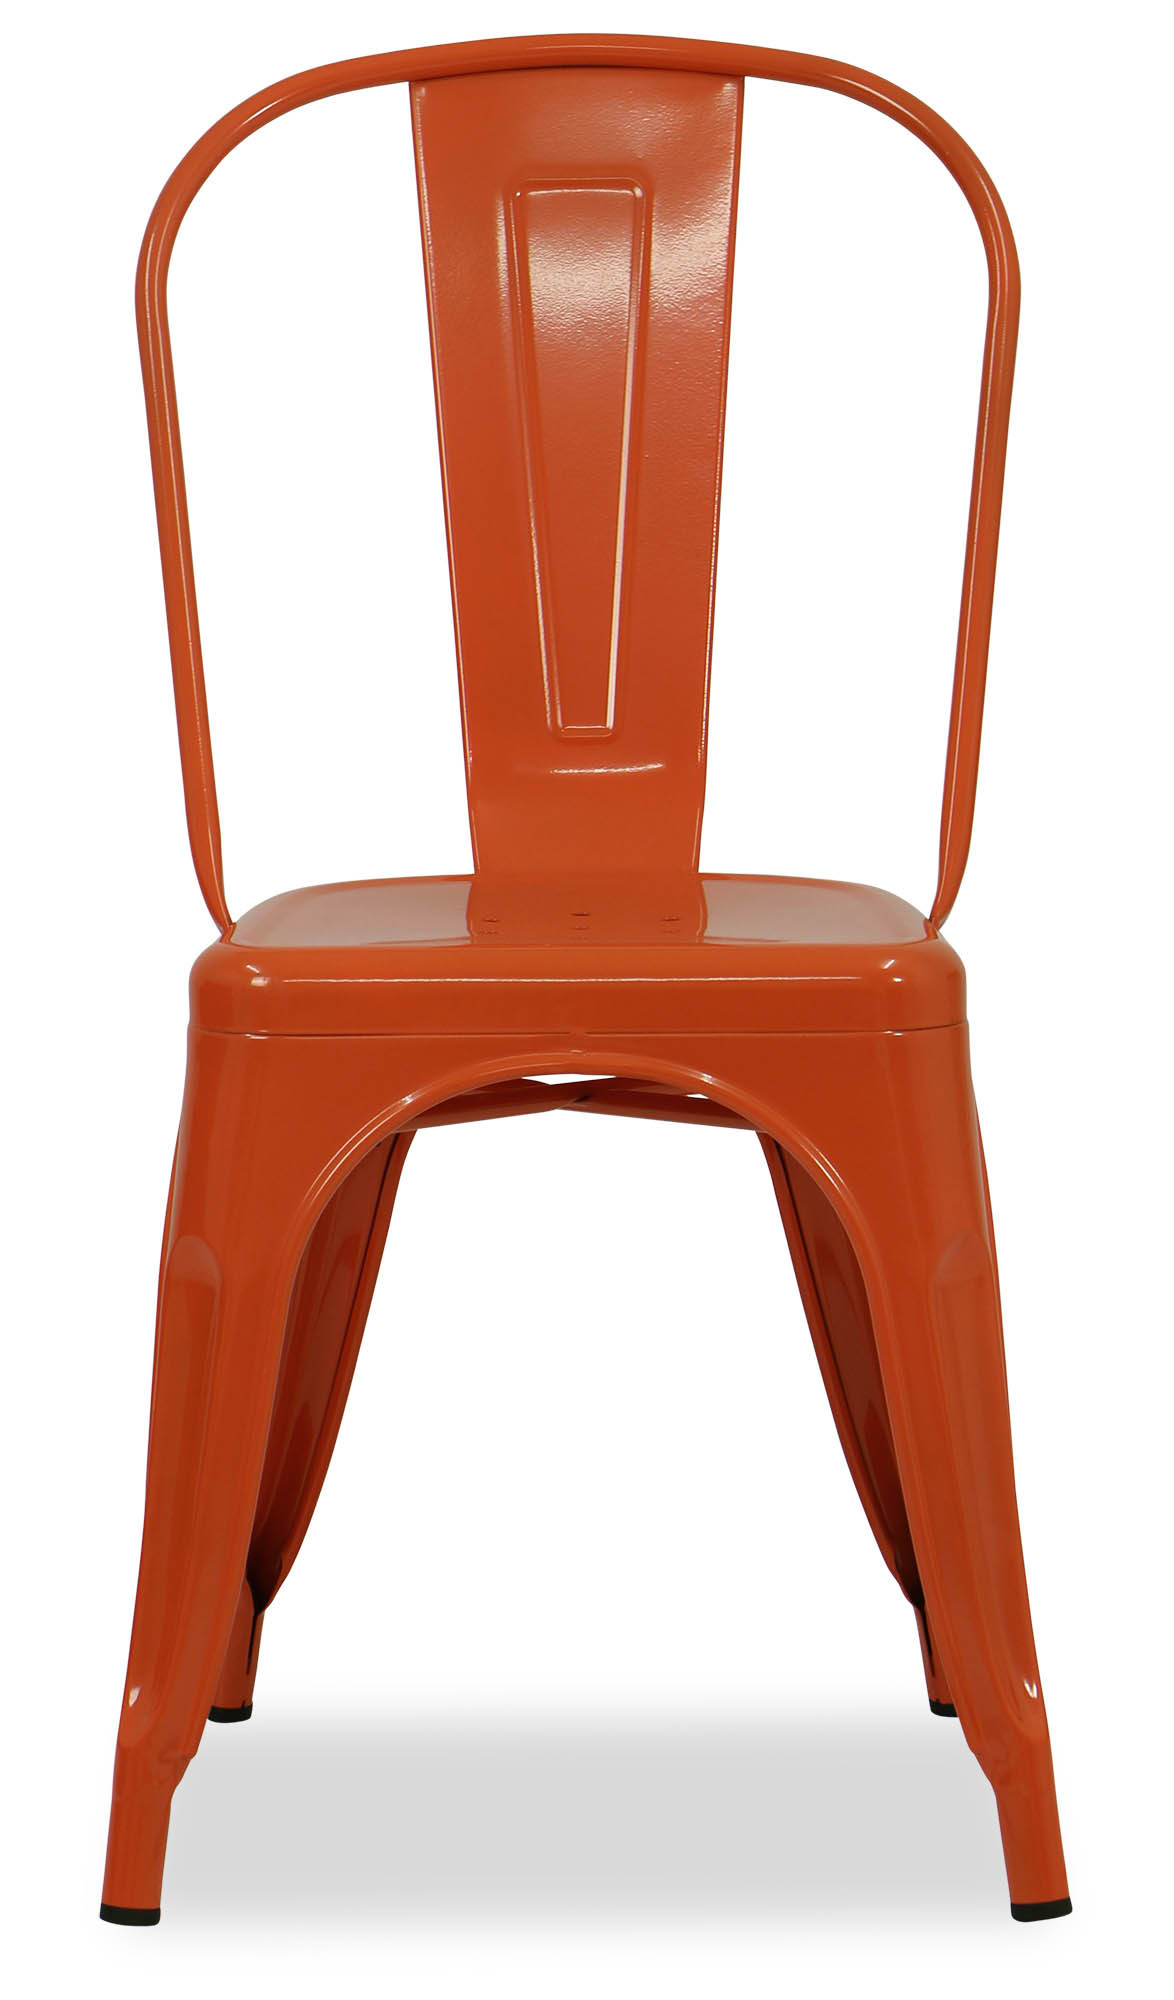 Retro Metal Chair Orange Dining Chairs Dining Room Furniture Furniture Home D Cor Fortytwo